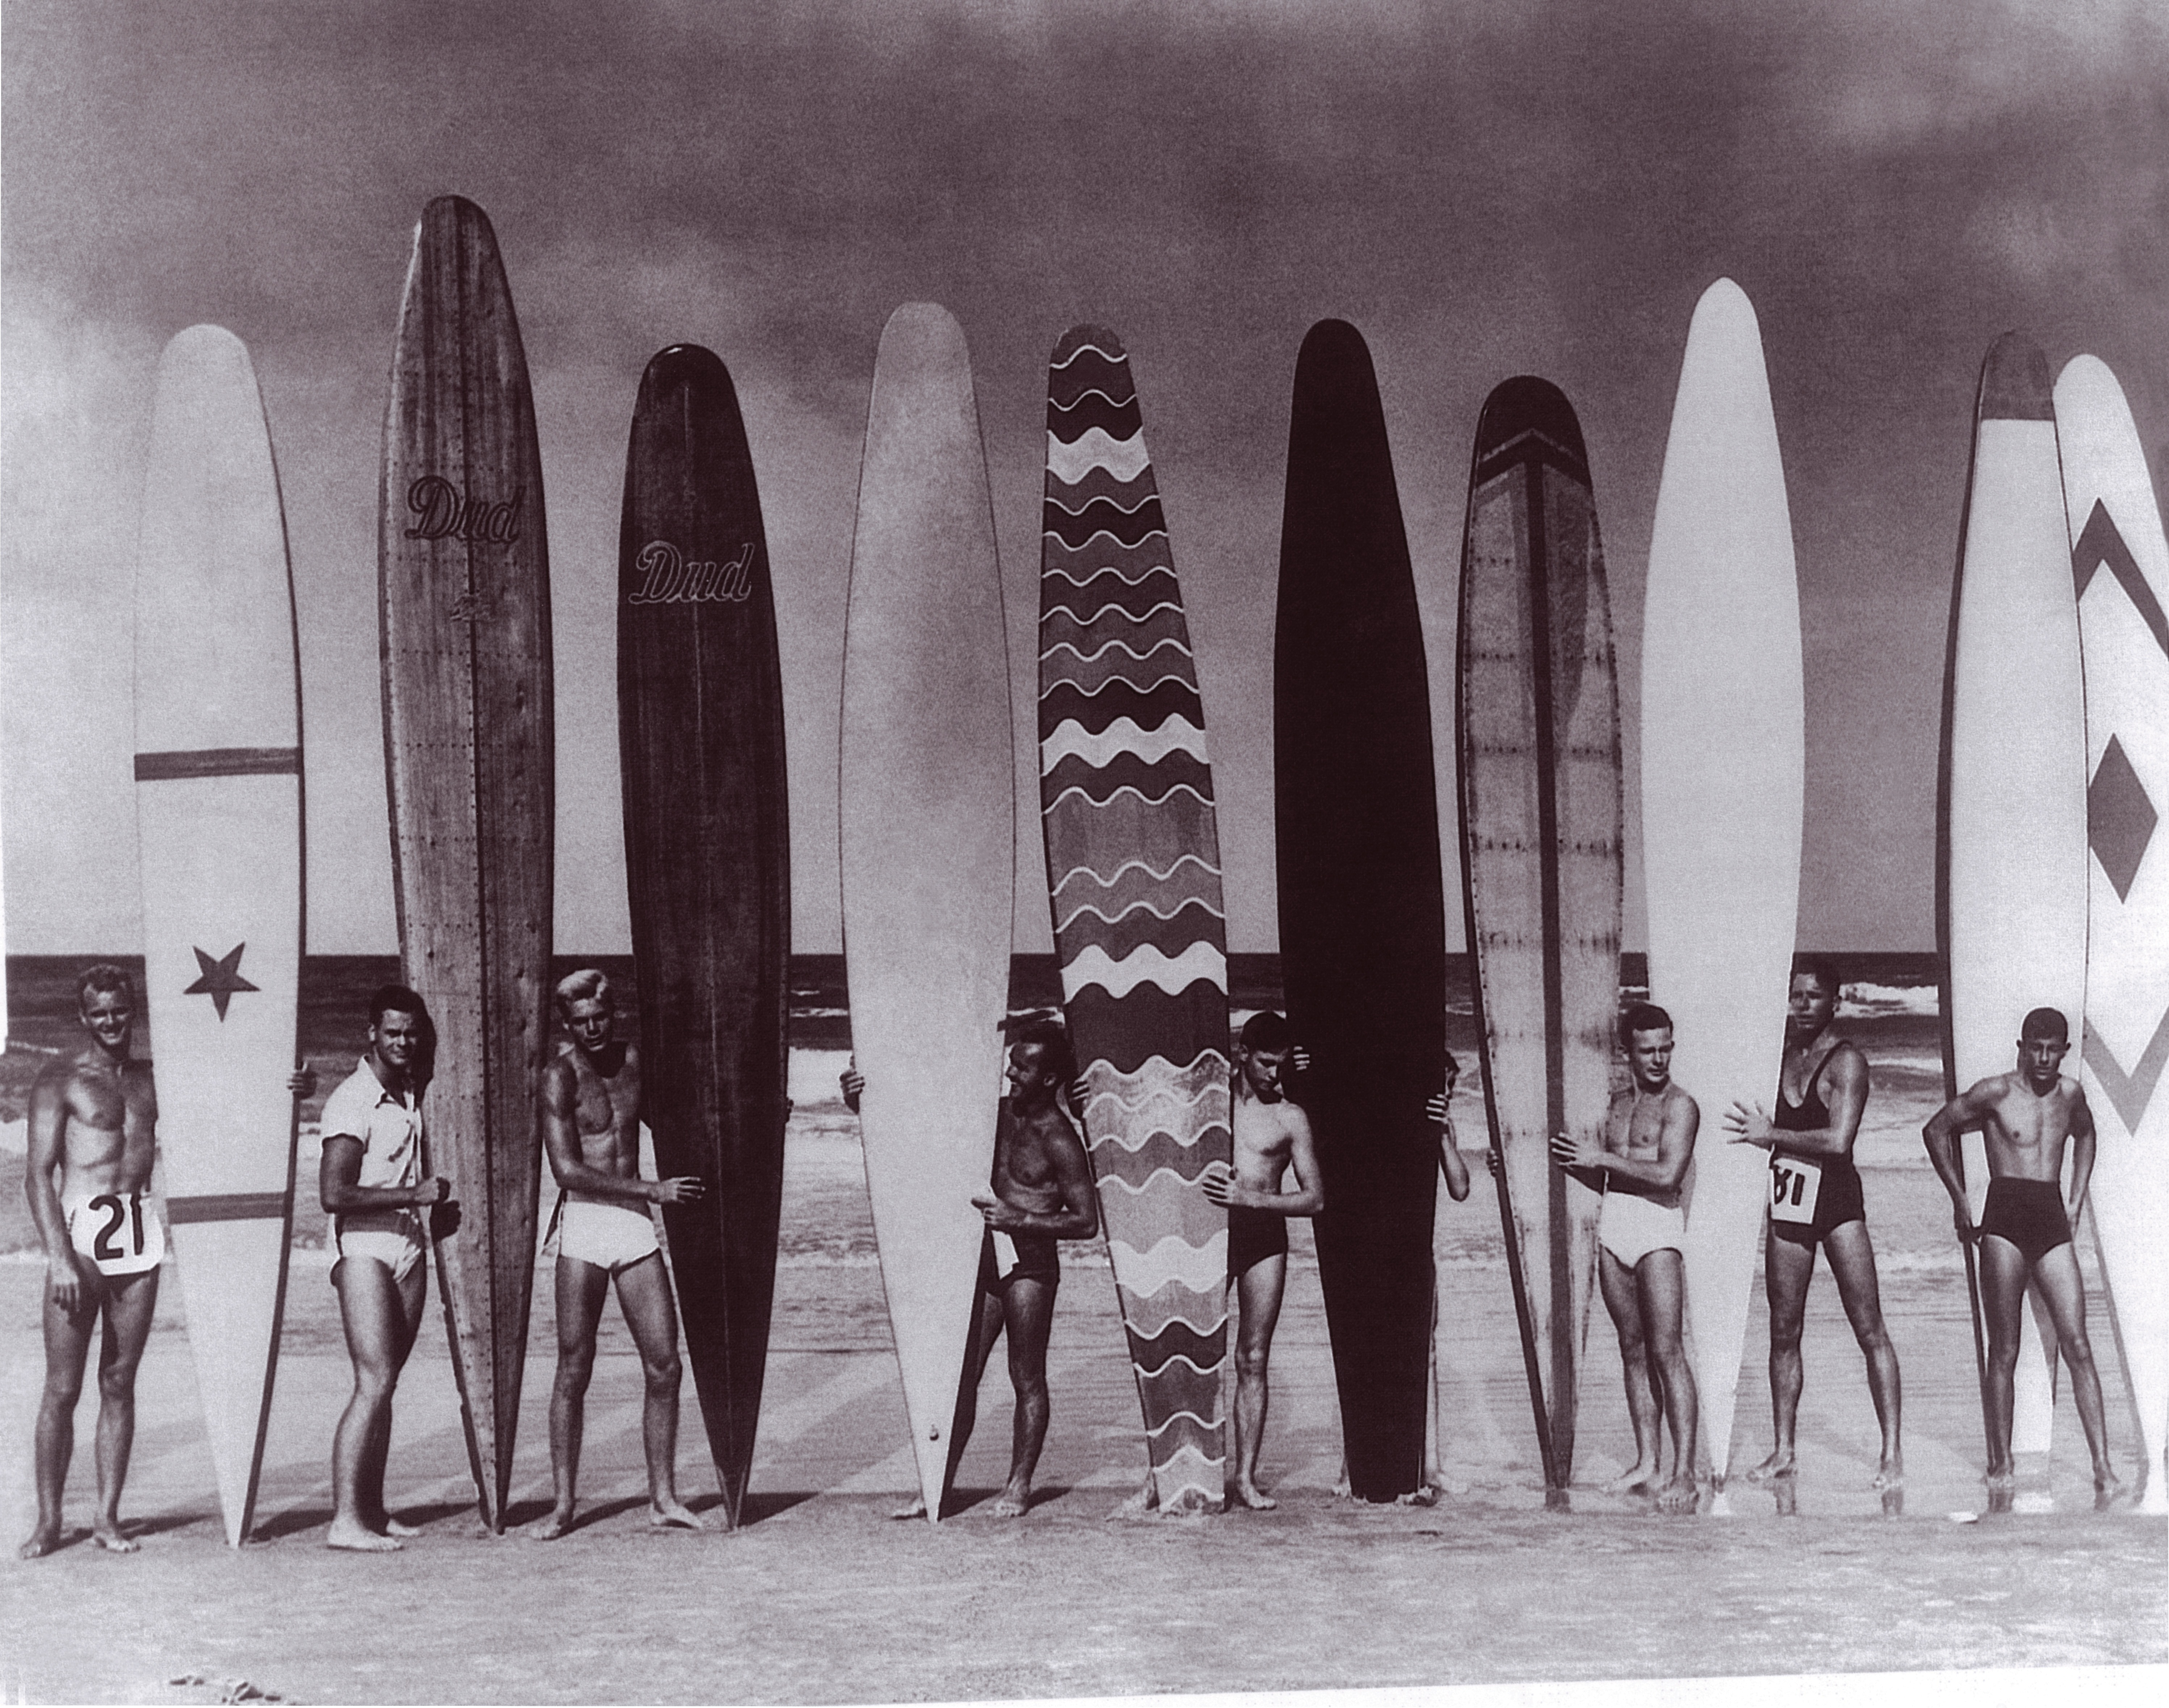 Black and white image of Stanley Whitman and his brothers Bill and Dudley with other surfers at Daytona Beach circa 1934